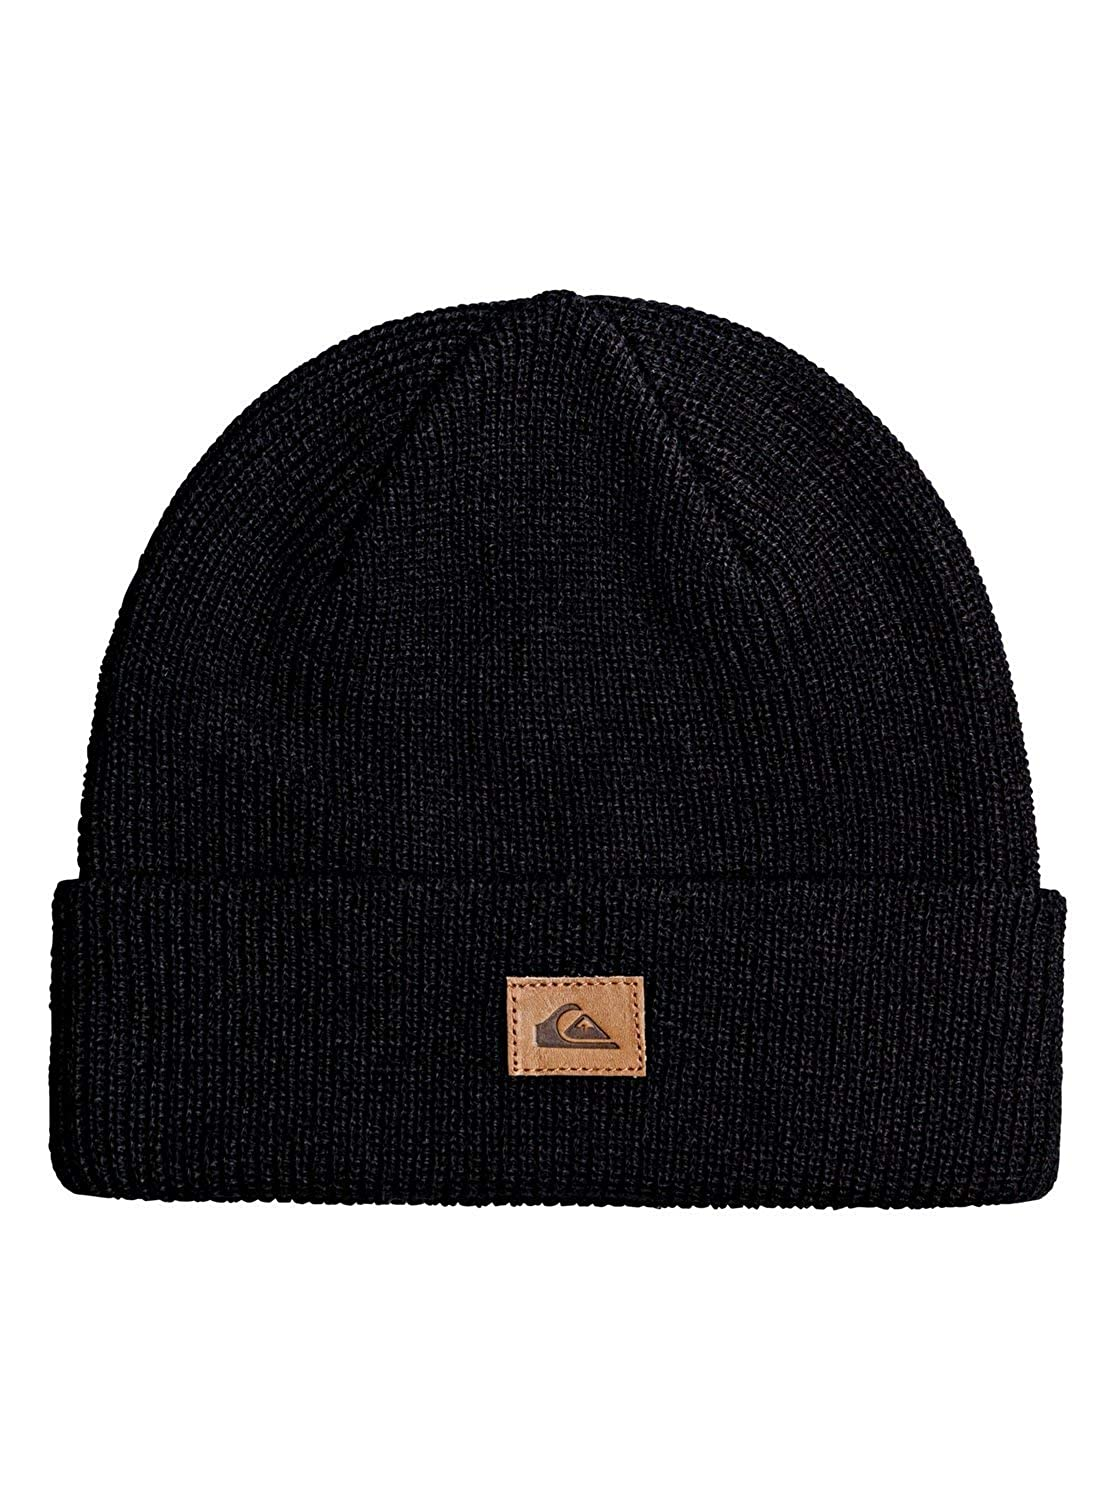 Quiksilver Mens Performed Beanie